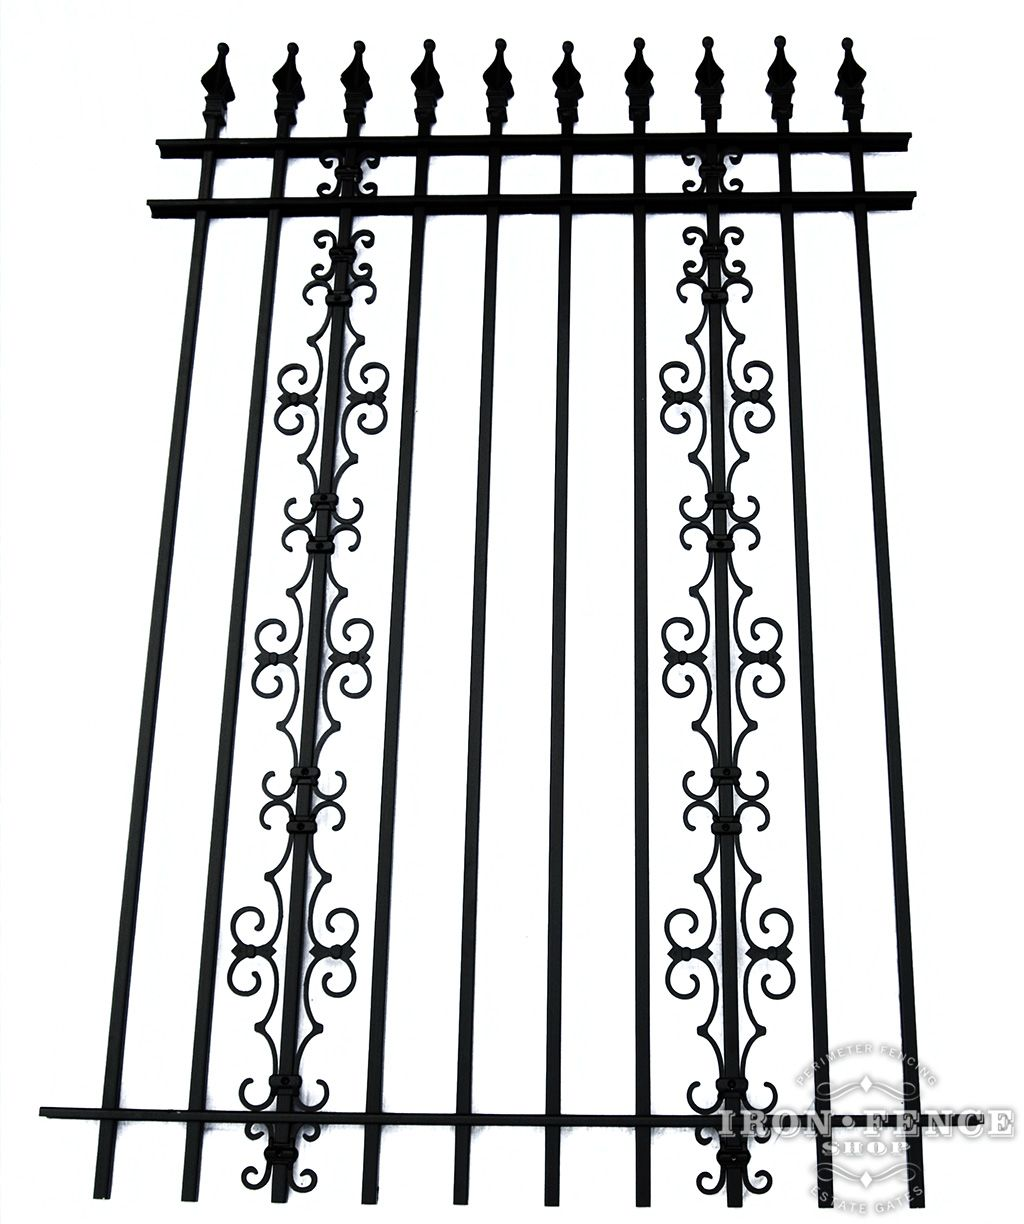 Aluminum Fence Vs Wrought Iron Cost In 2020 Iron Fence Panels